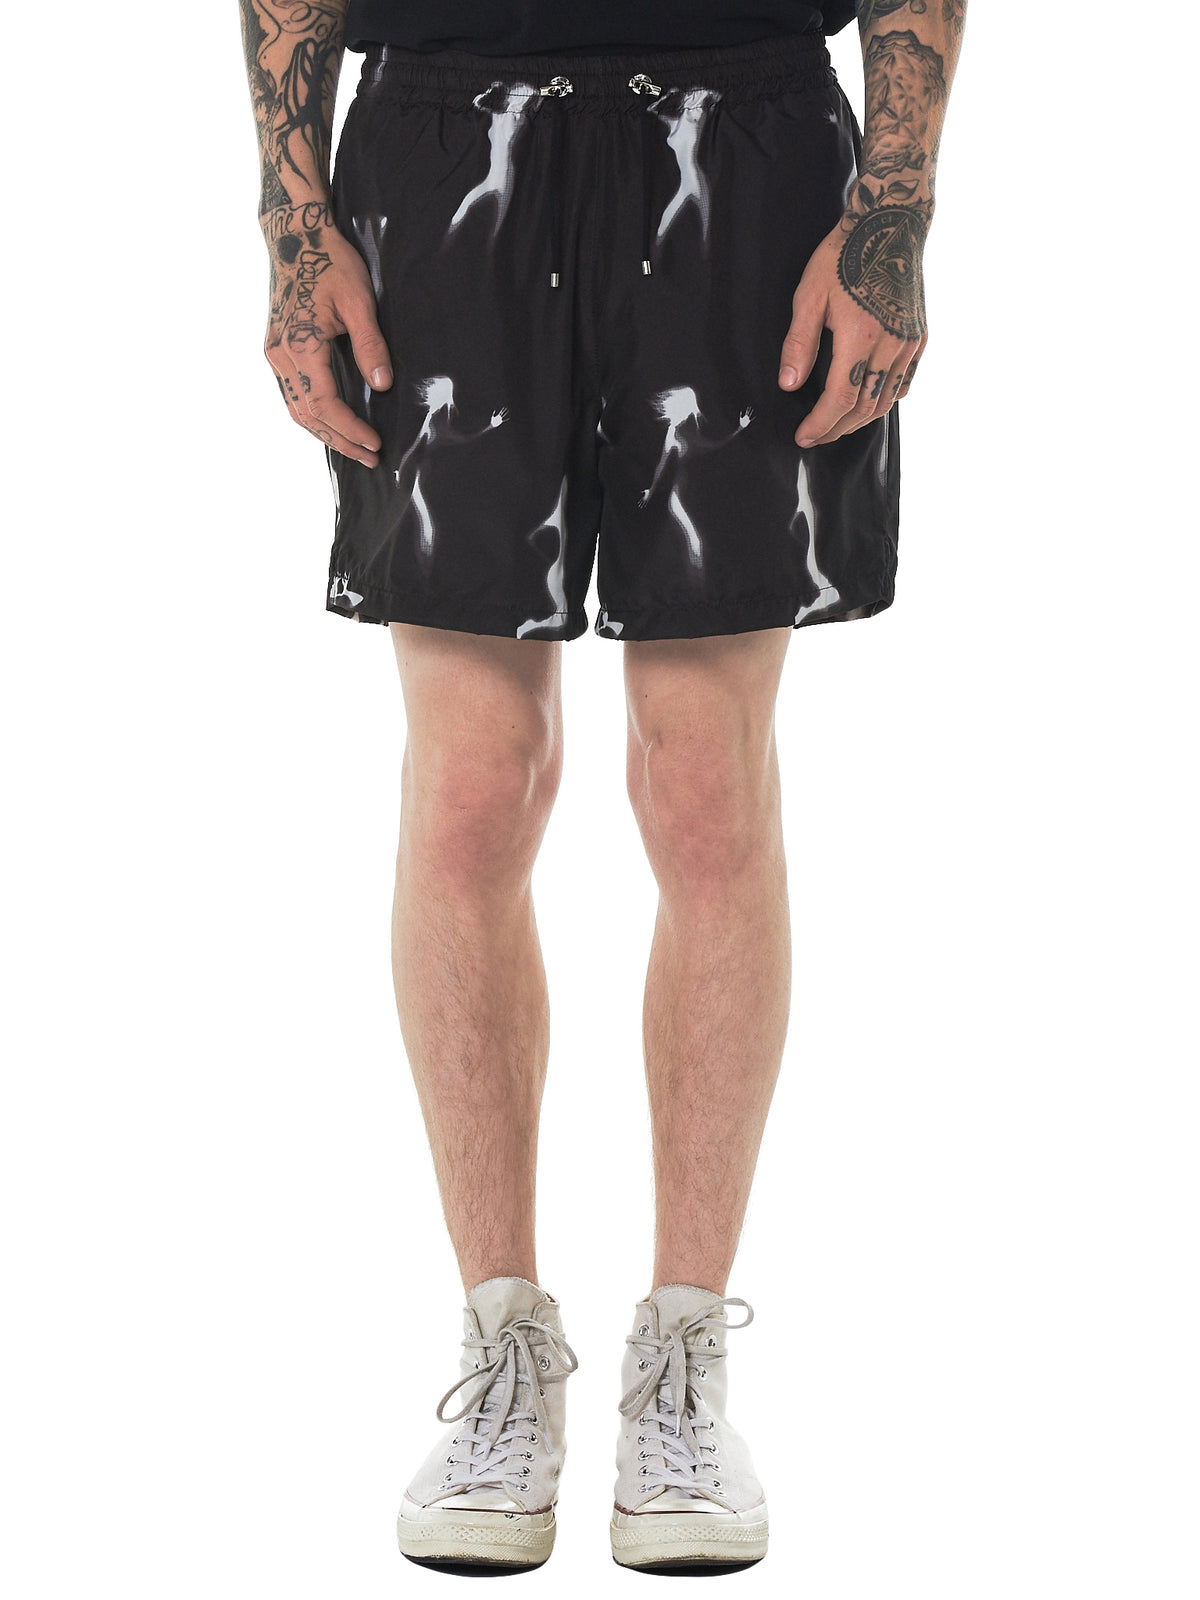 'Strippers' Print Shorts (313-STRIPPERS)